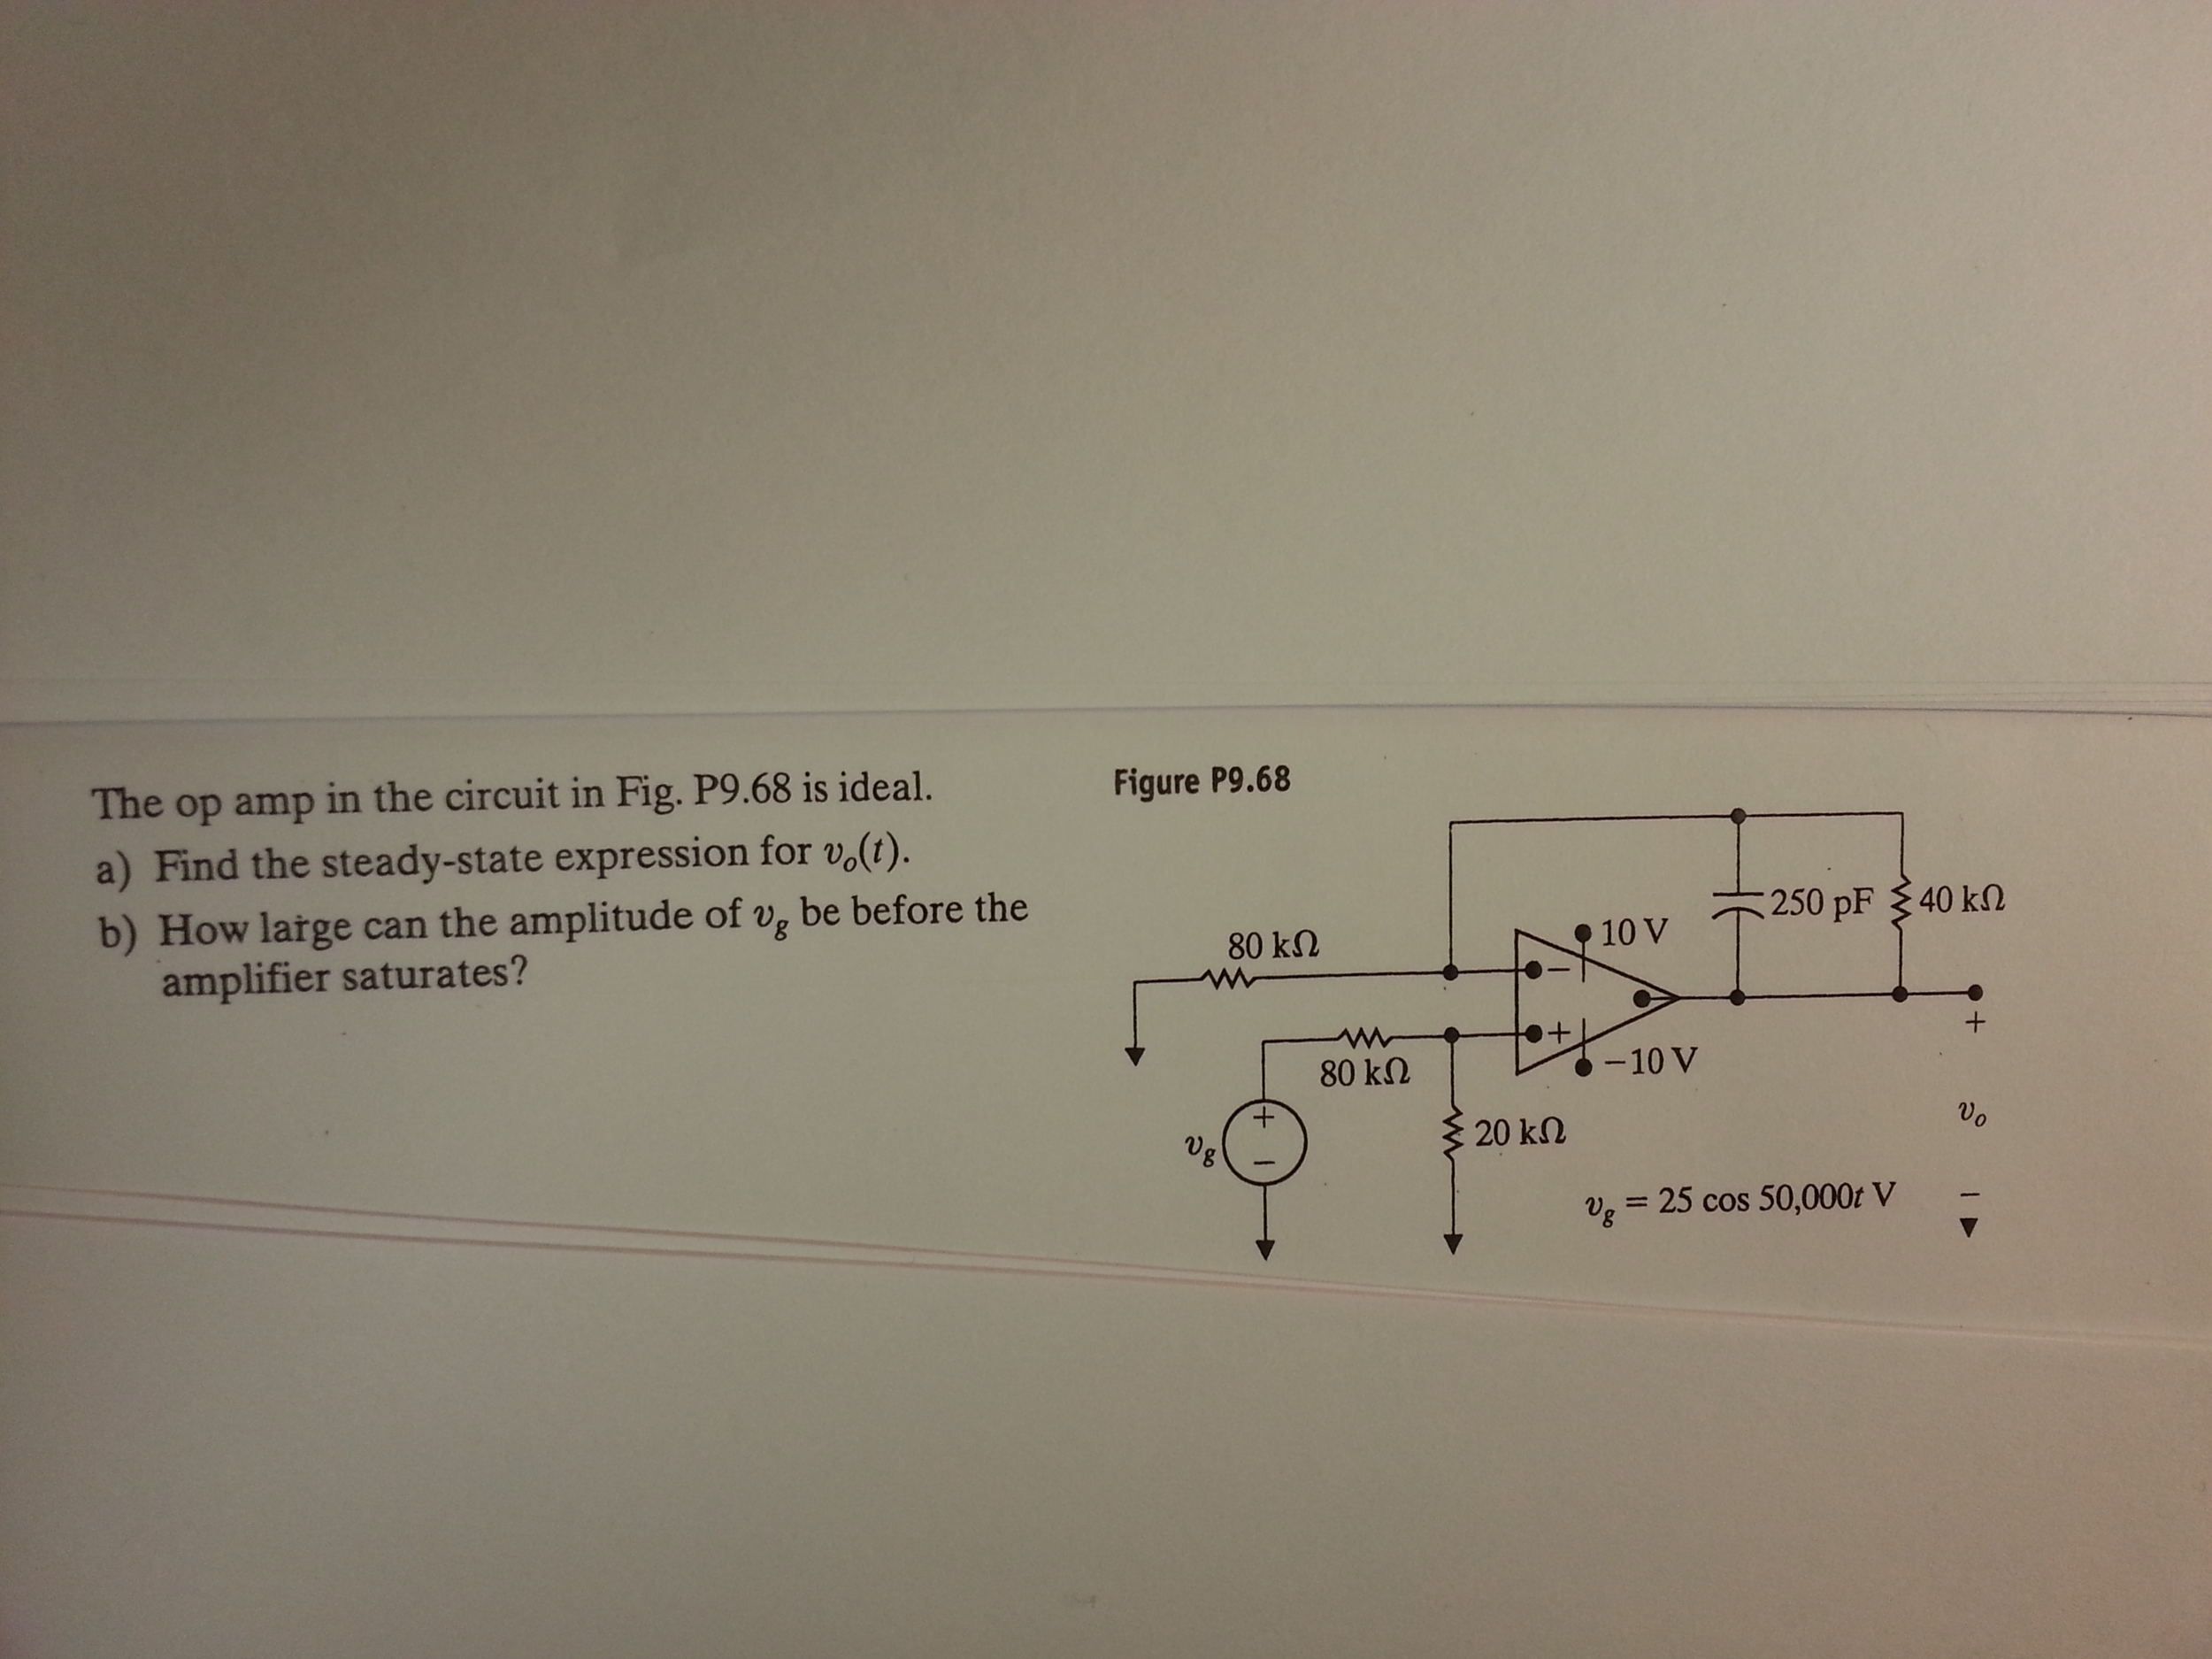 The op amp in the circuit in Fig. P9.68 is ideal.